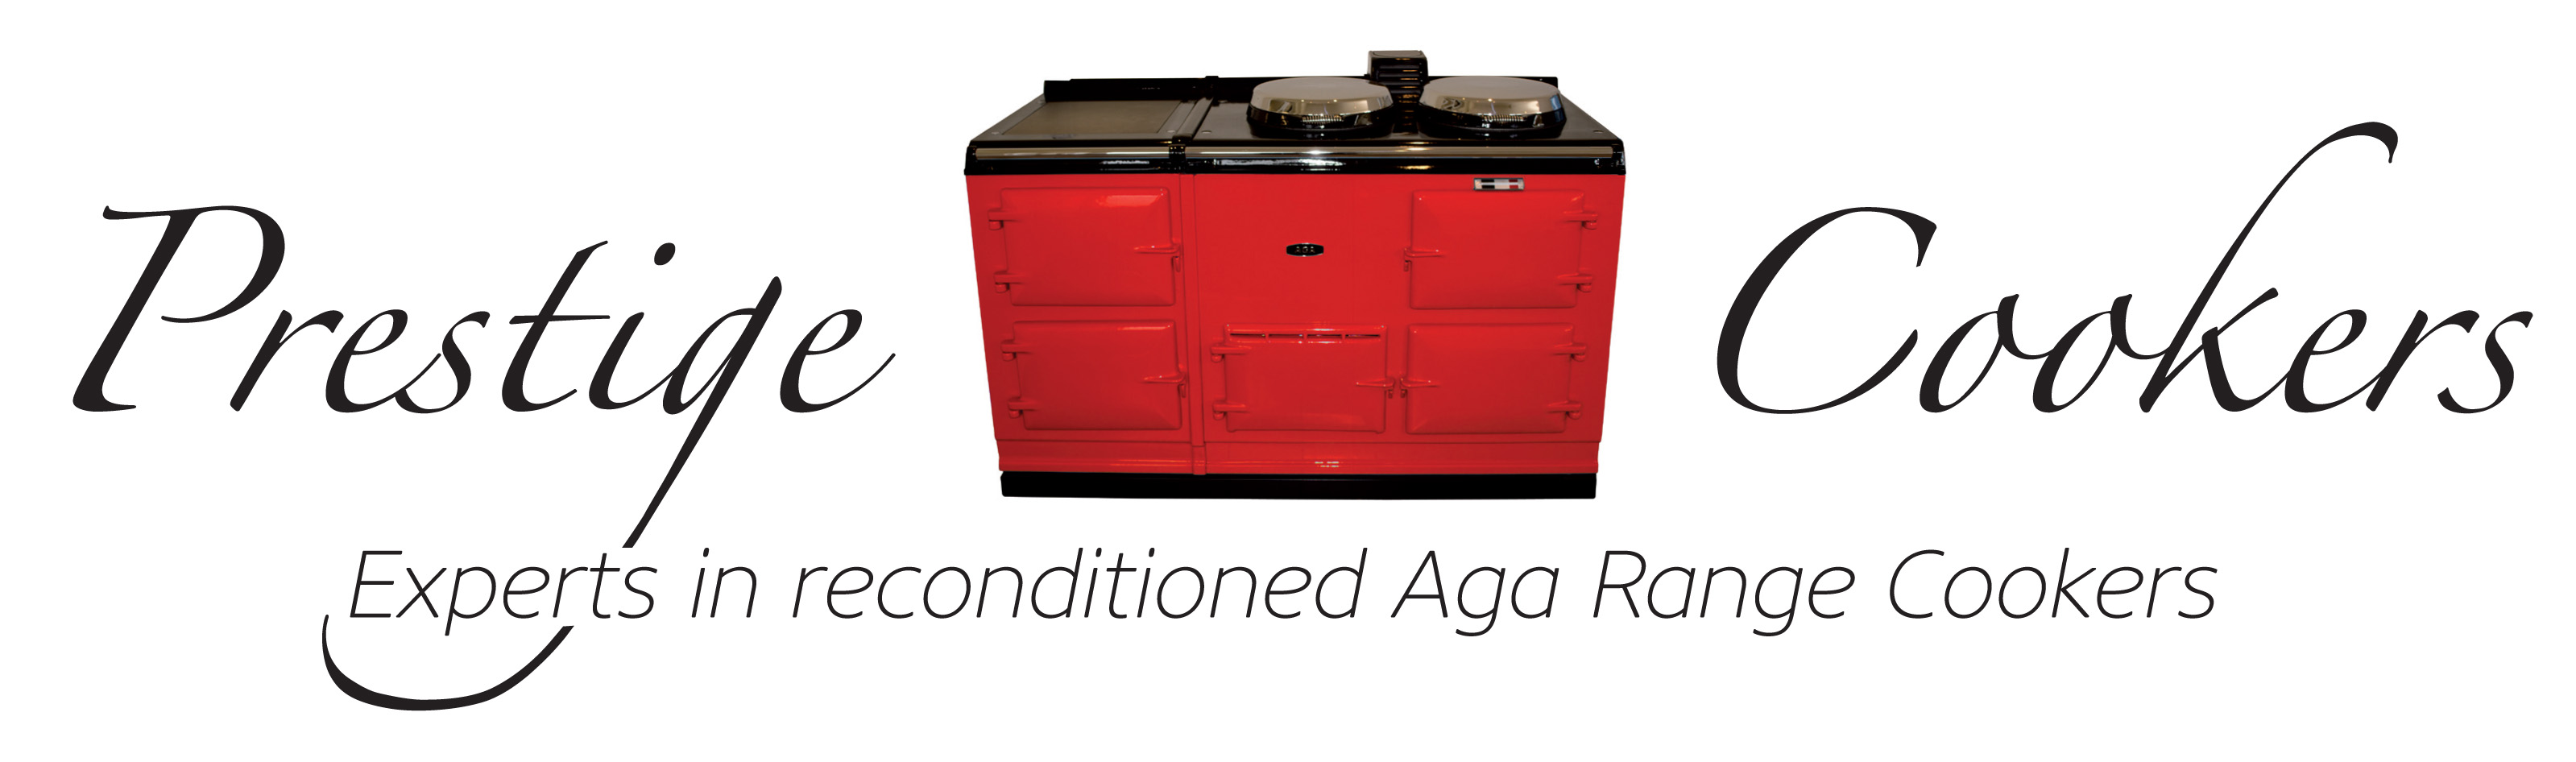 Prestige Cookers - Experts in reconditioned Aga Range Cookers